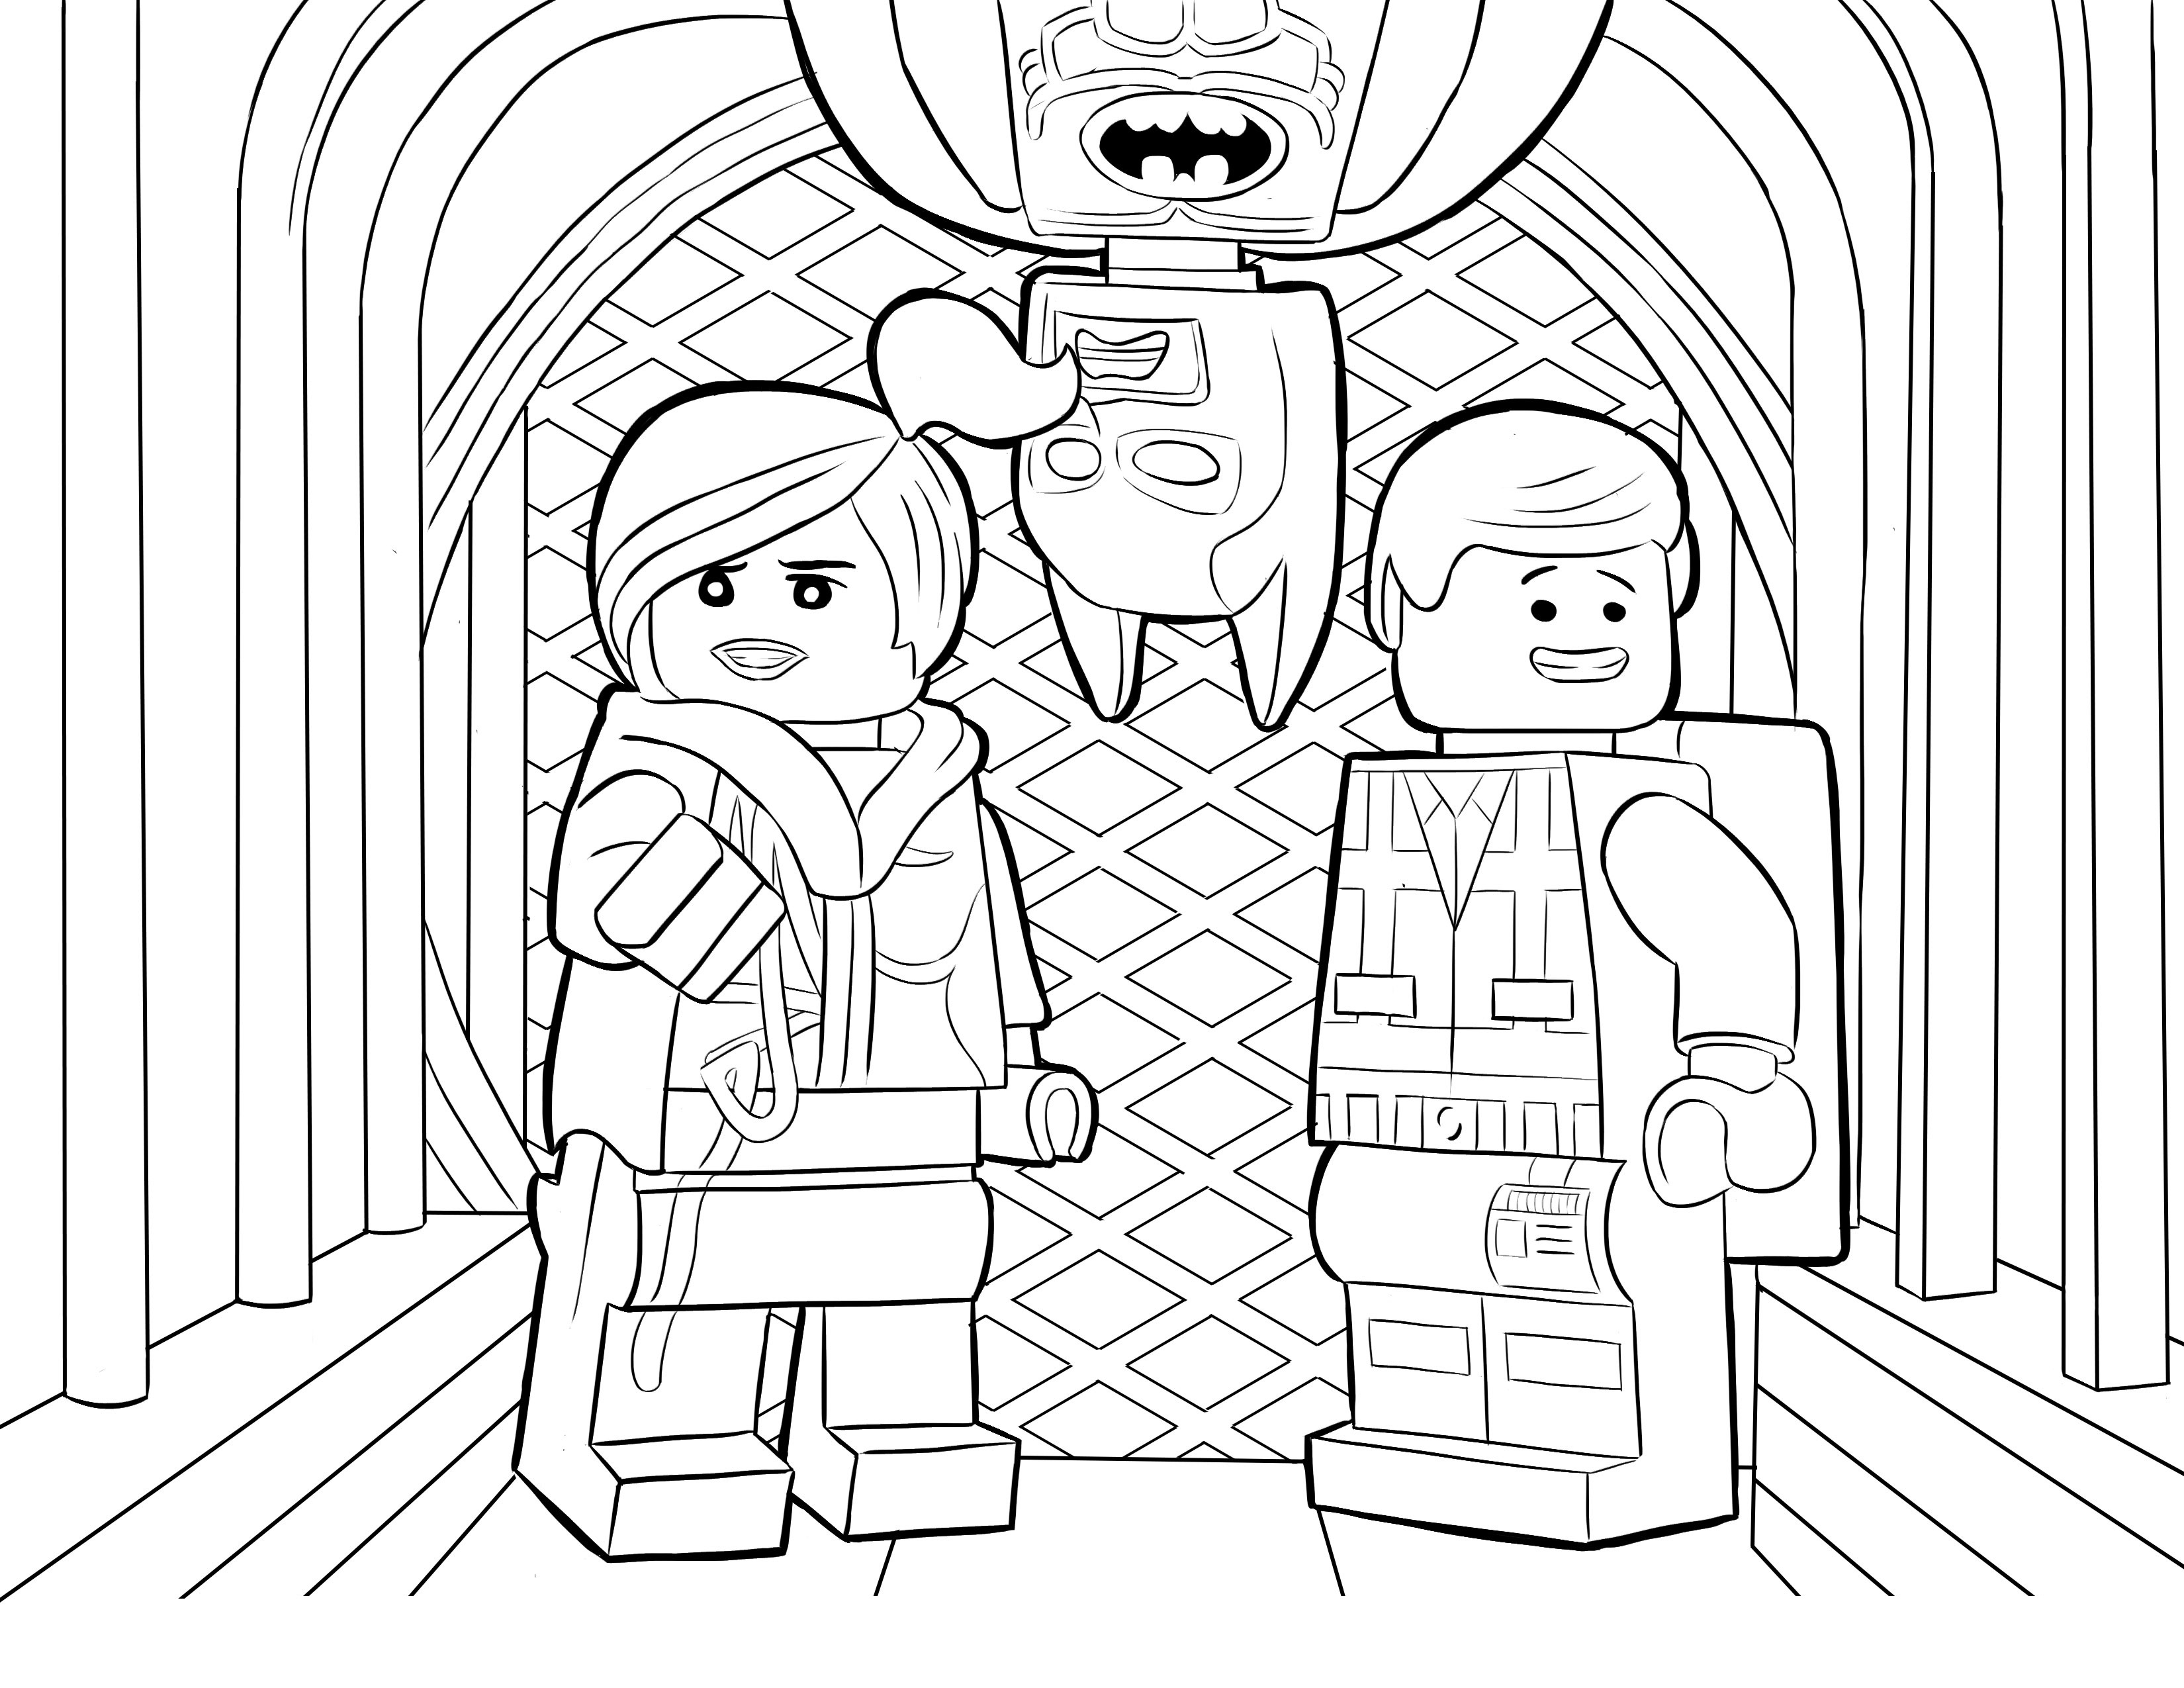 lego color sheet free coloring pages printable pictures to color kids lego color sheet